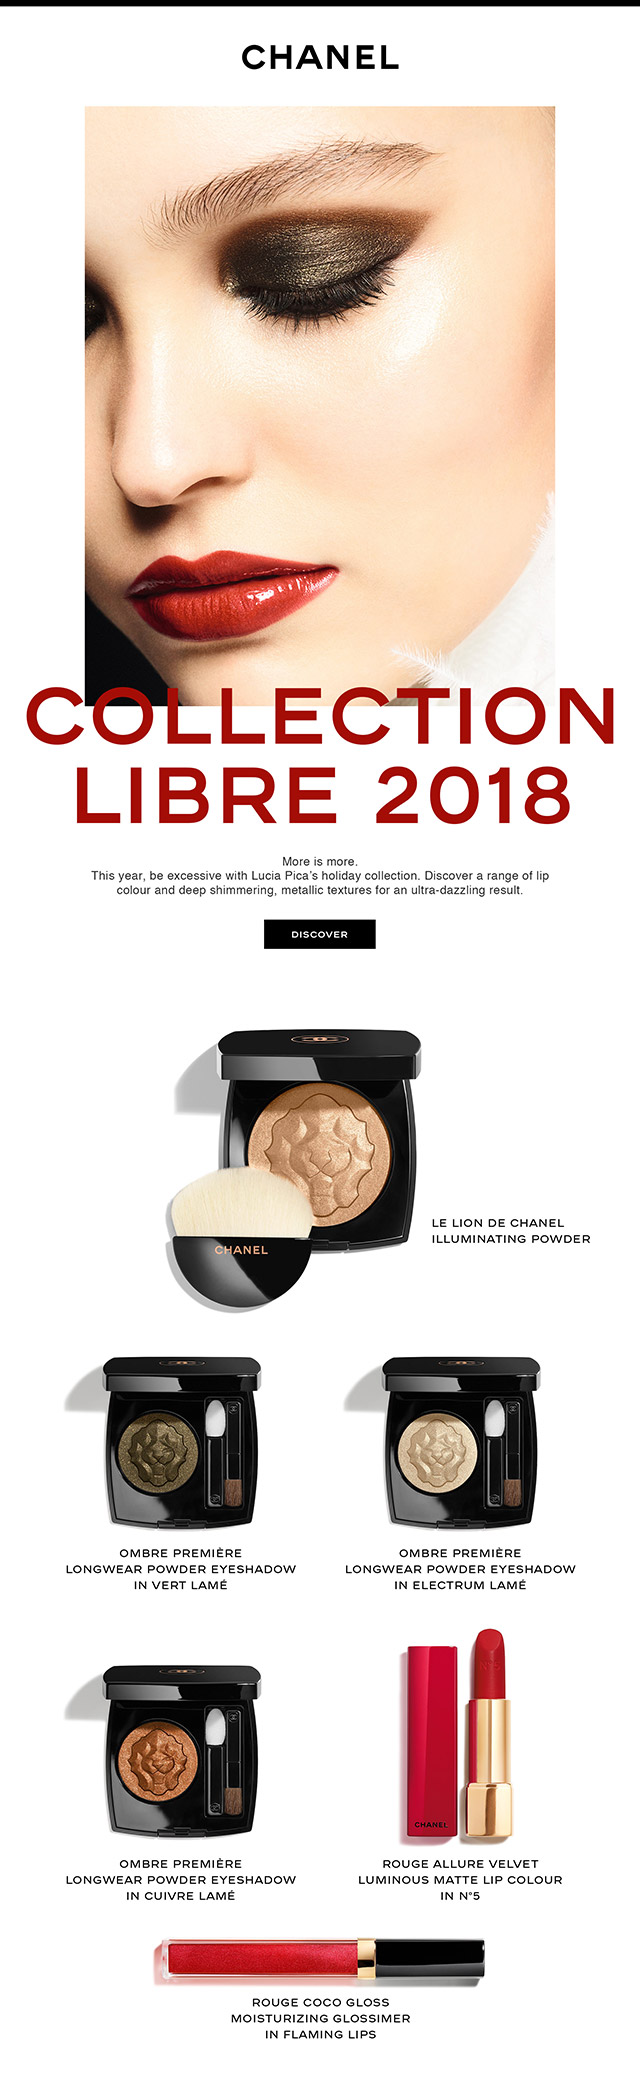 Discover CHANEL COLLECTION LIBRE 2018.